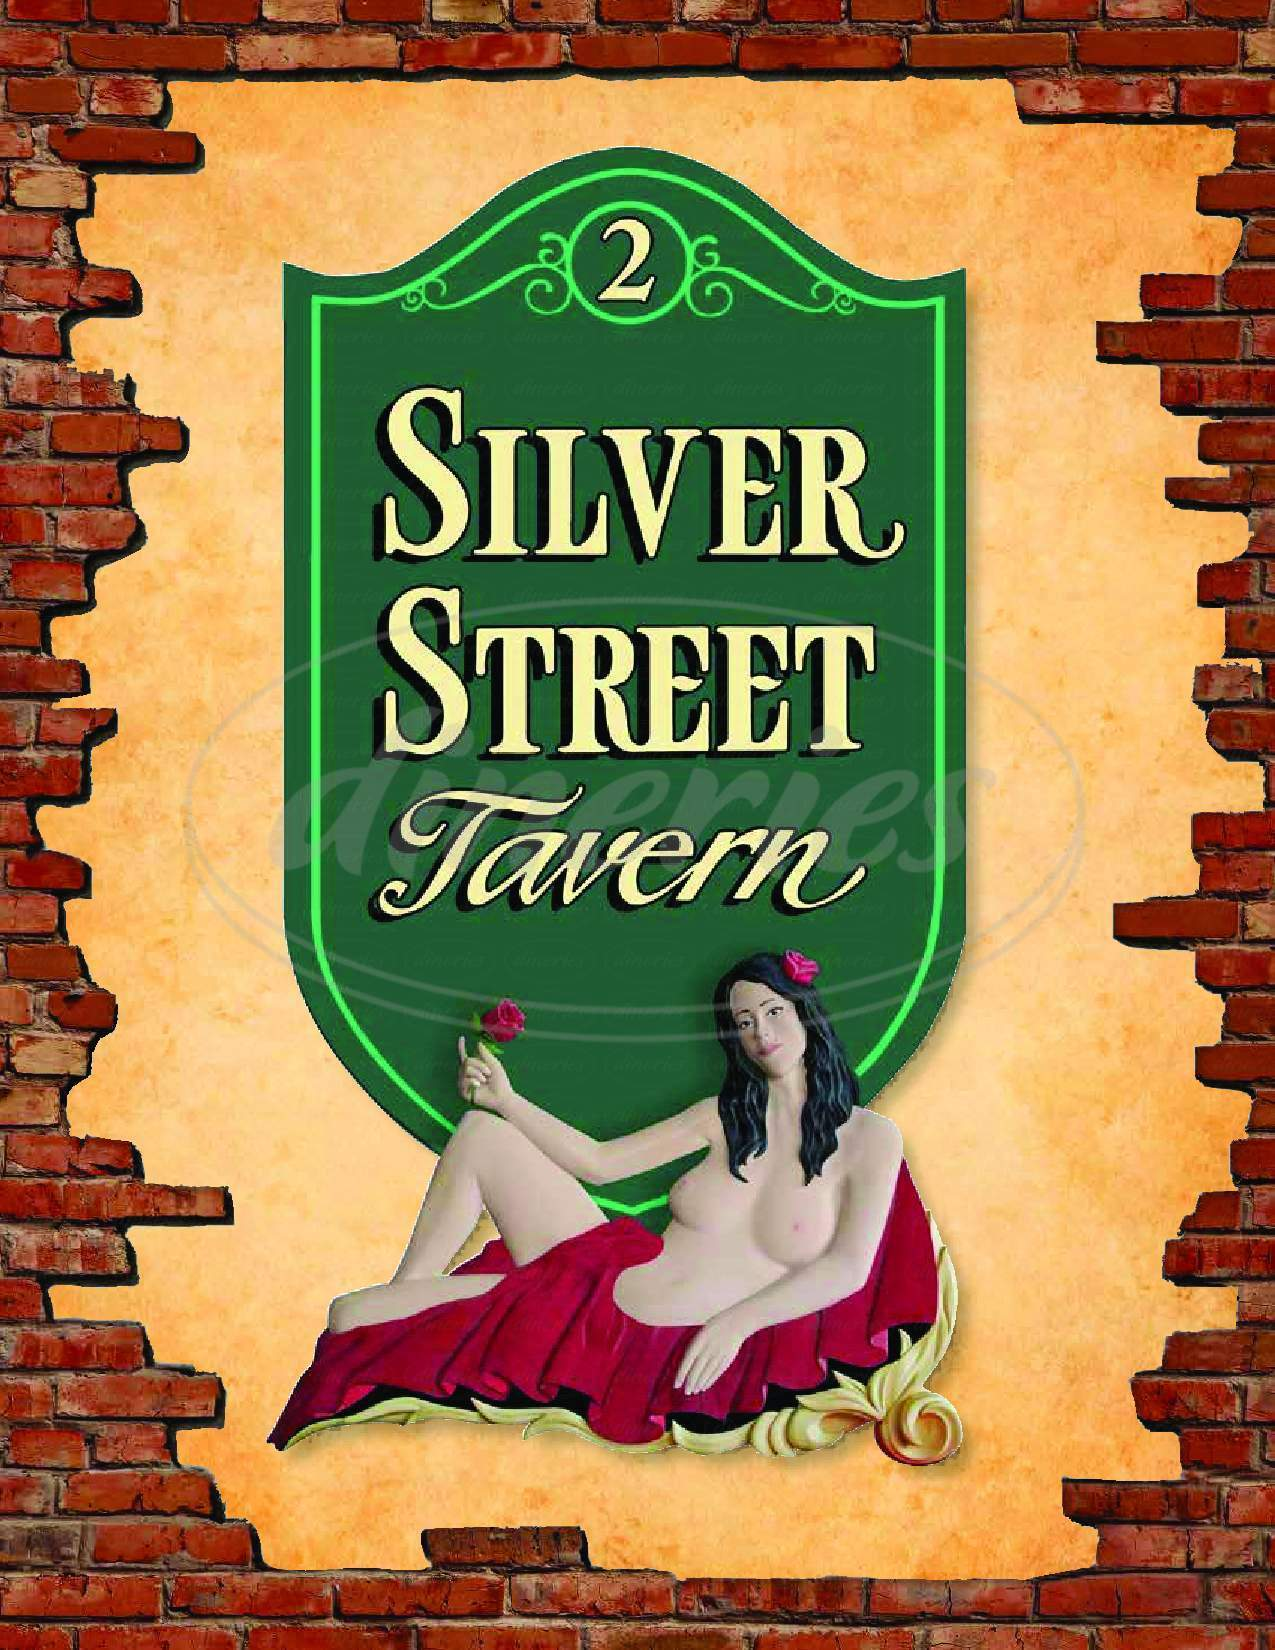 menu for Silver Street Tavern